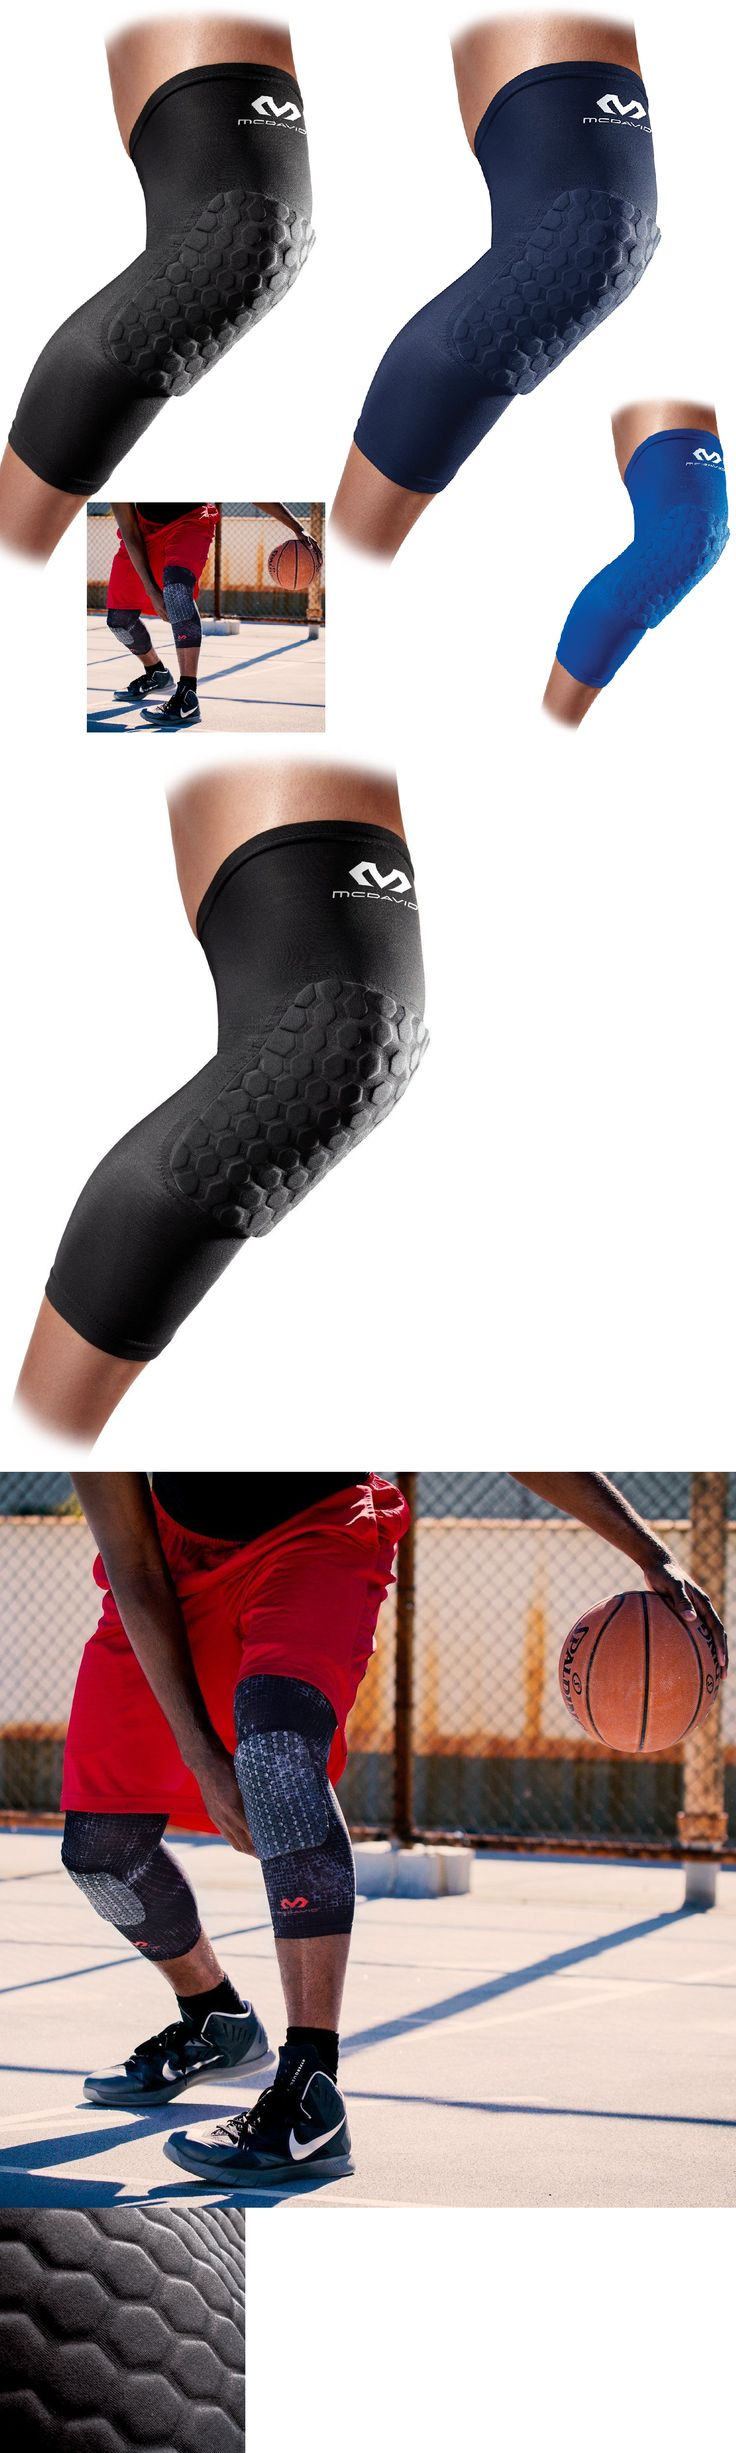 Protective Gear 158969: Basketball Knee Pads Mcdavid 6446 Hex Padded Compression Leg Sleeve One Pair -> BUY IT NOW ONLY: $40.1 on eBay!